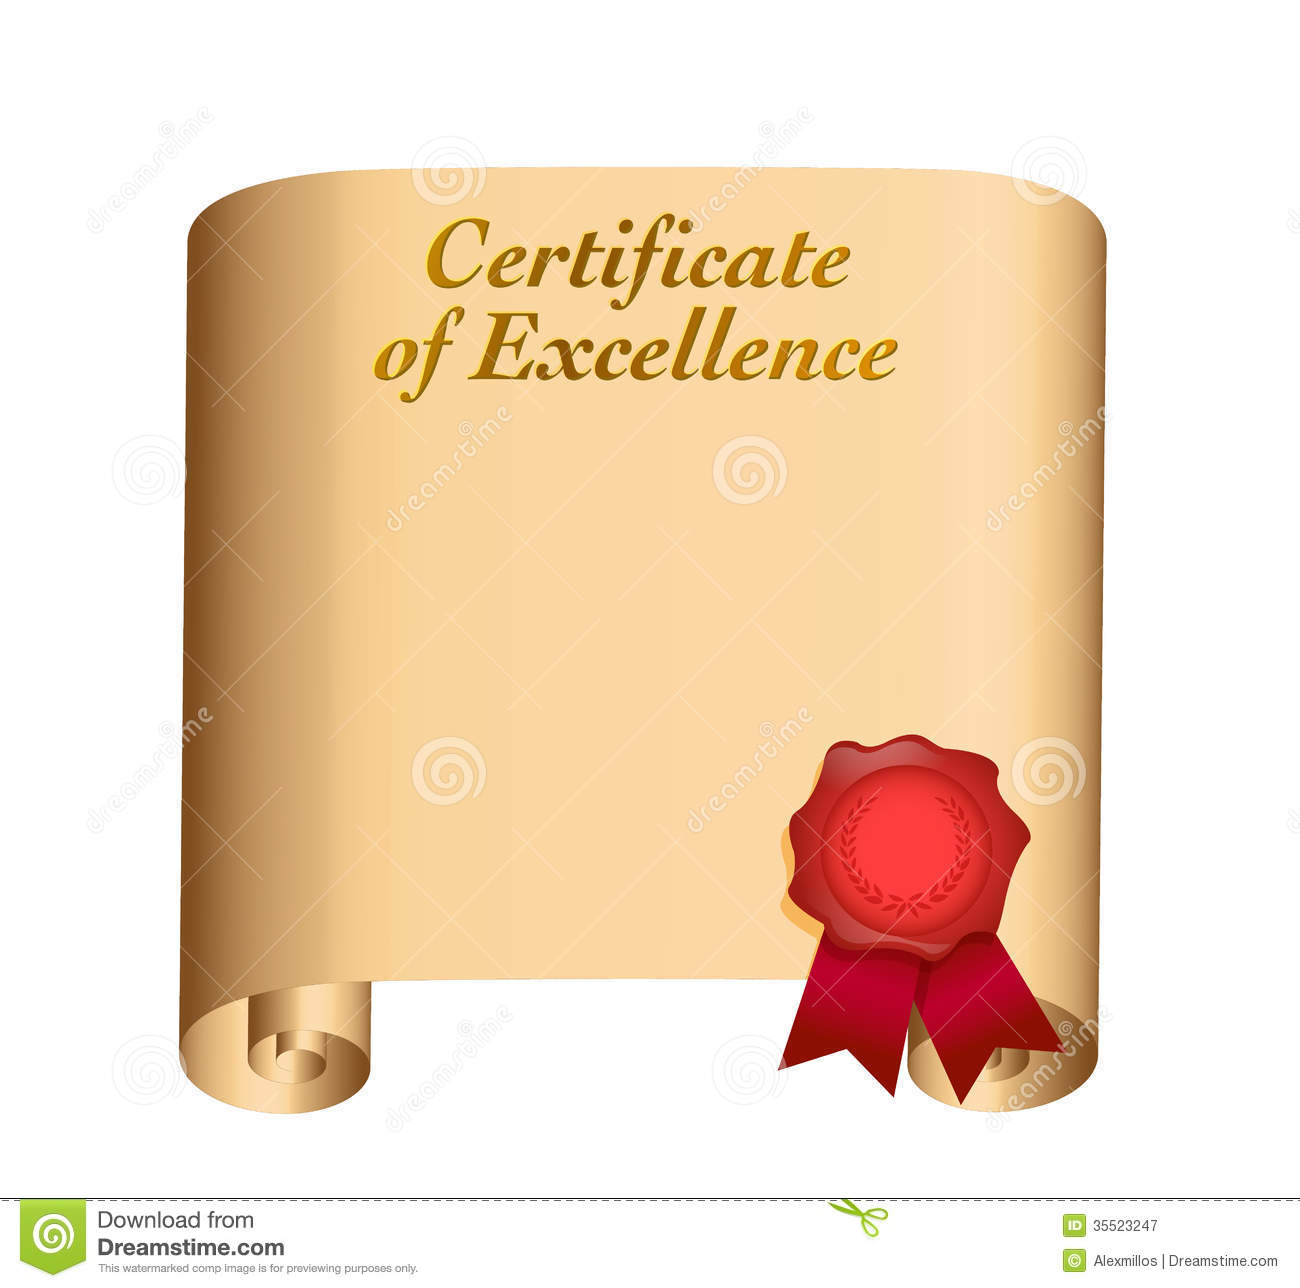 Certificate Of Excellence Illustration Stock Illustration ...